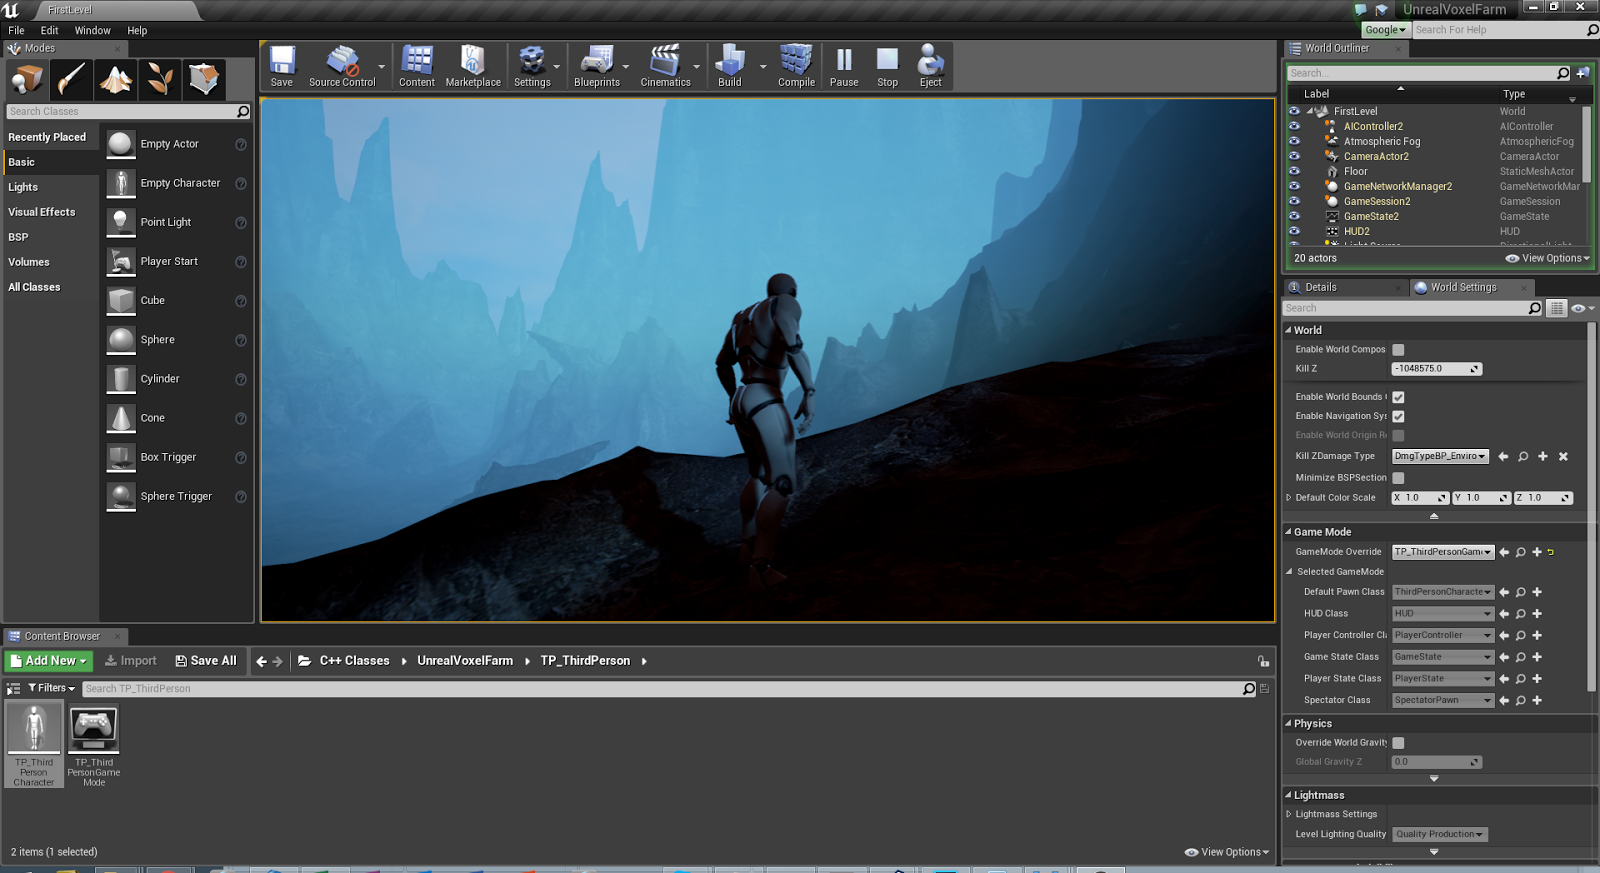 Procedural World: Announcing Unreal Engine 4 support